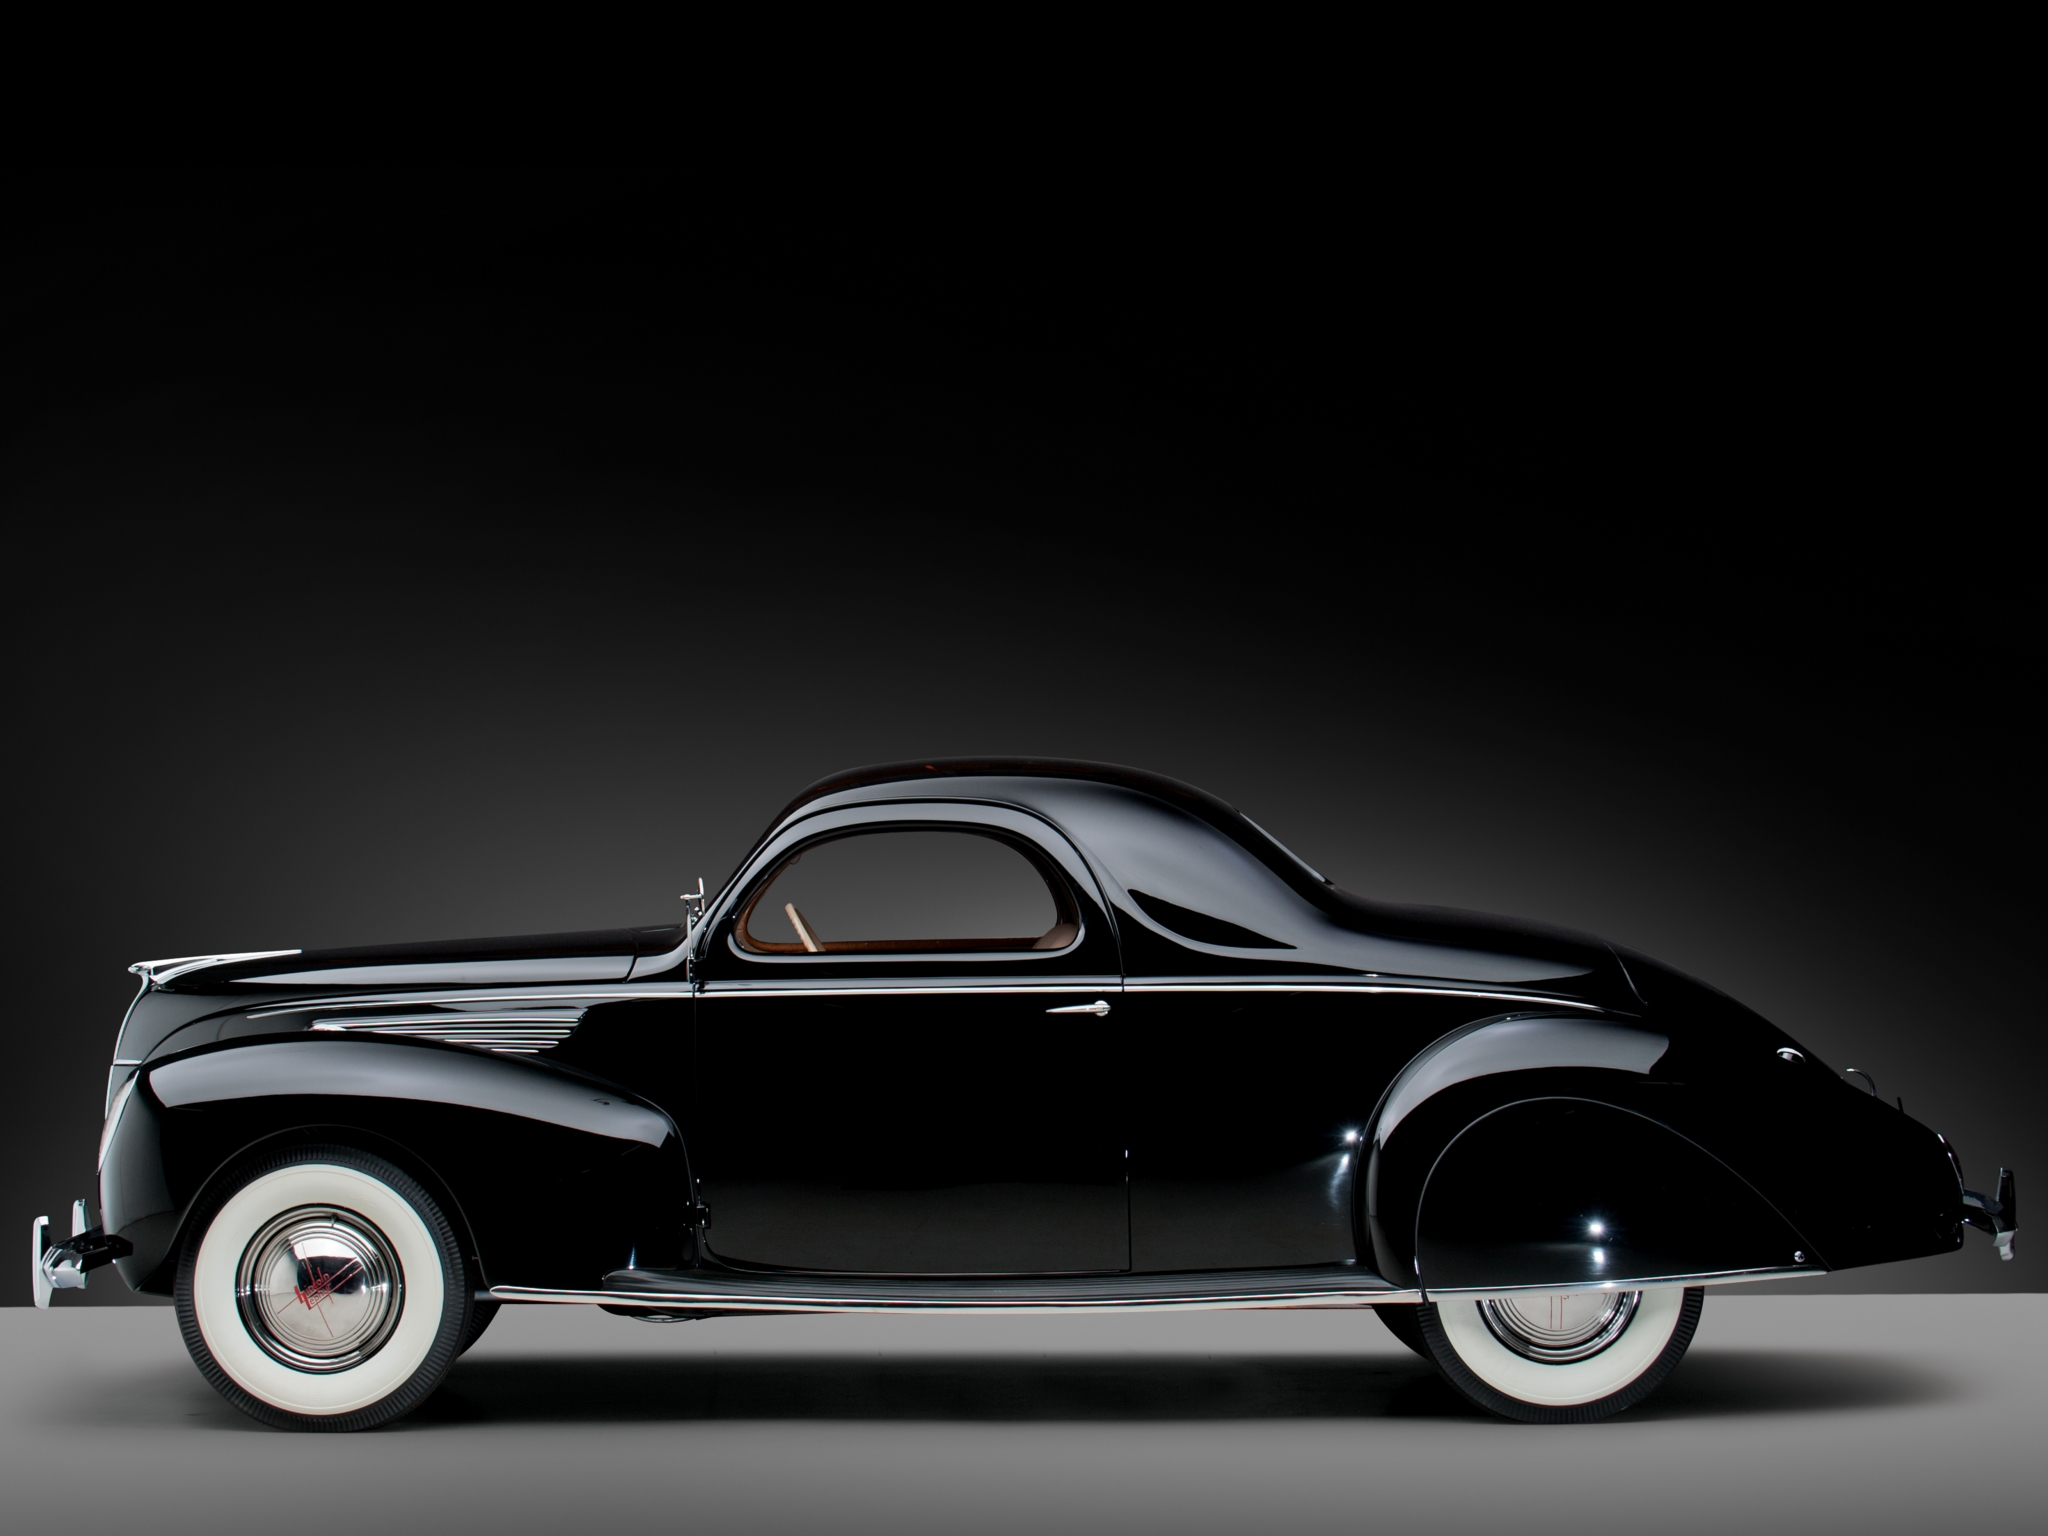 1938 lincoln zephyr coupe 270 retro d wallpaper